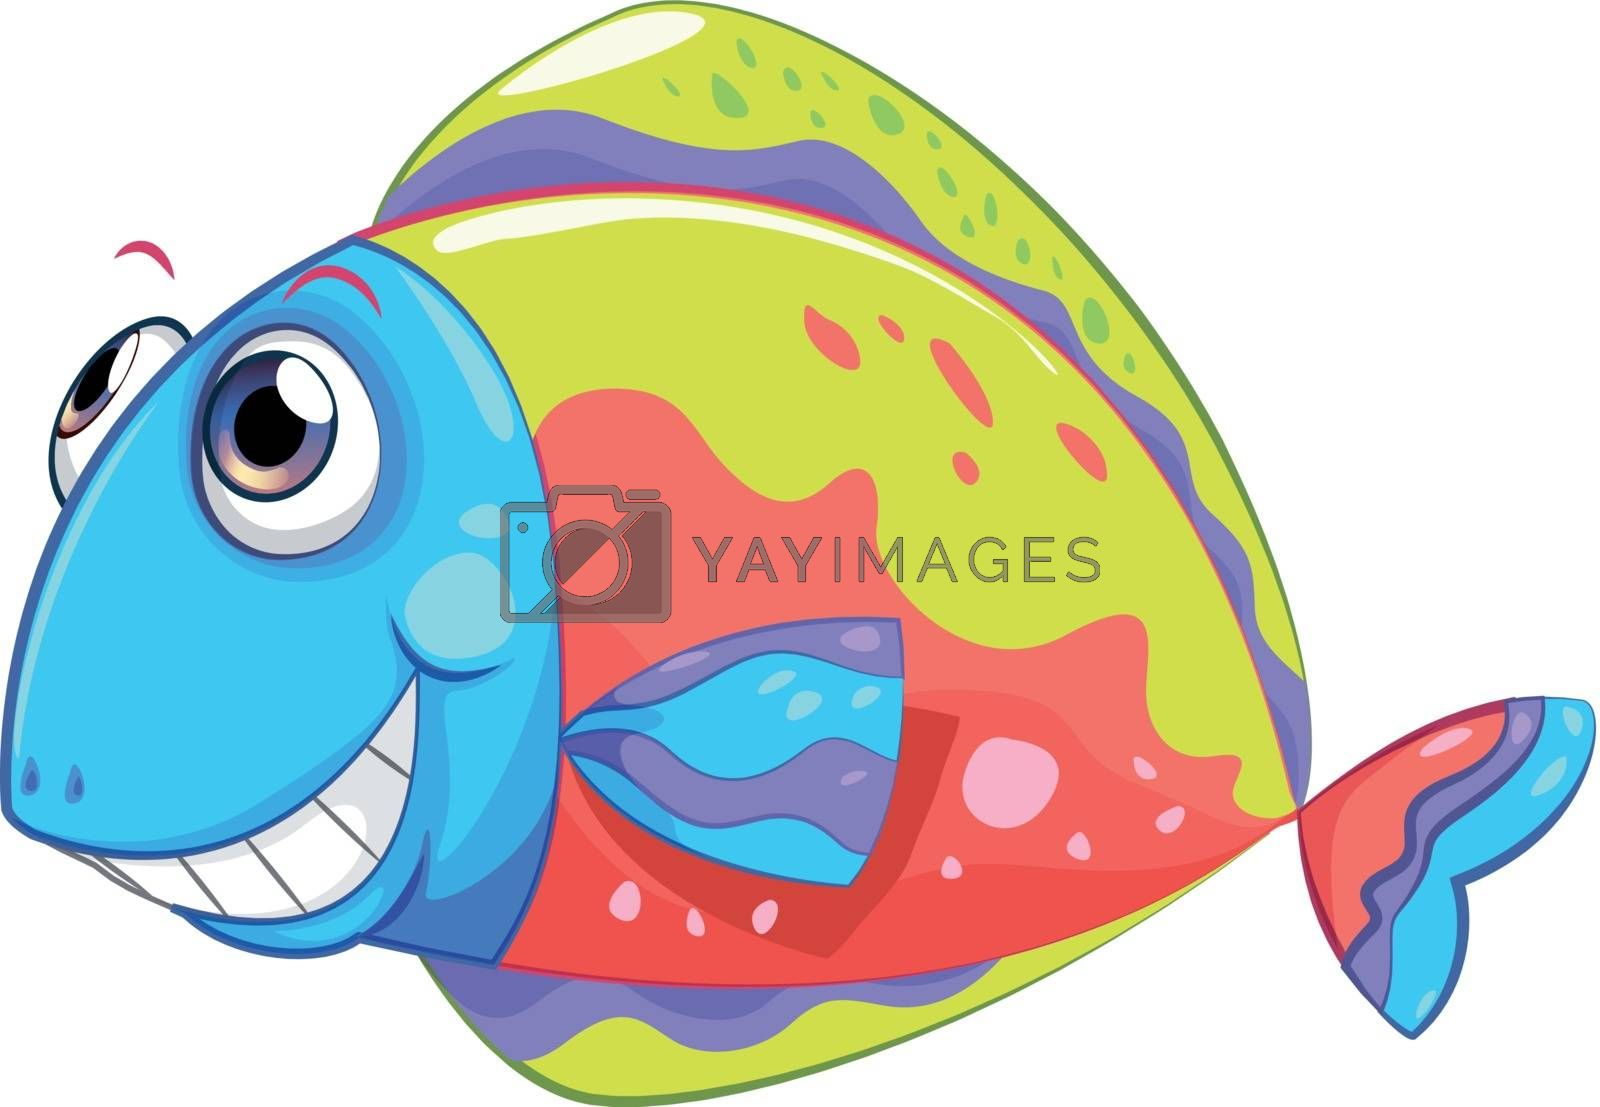 Illustration of a colorful smiling fish on a white background